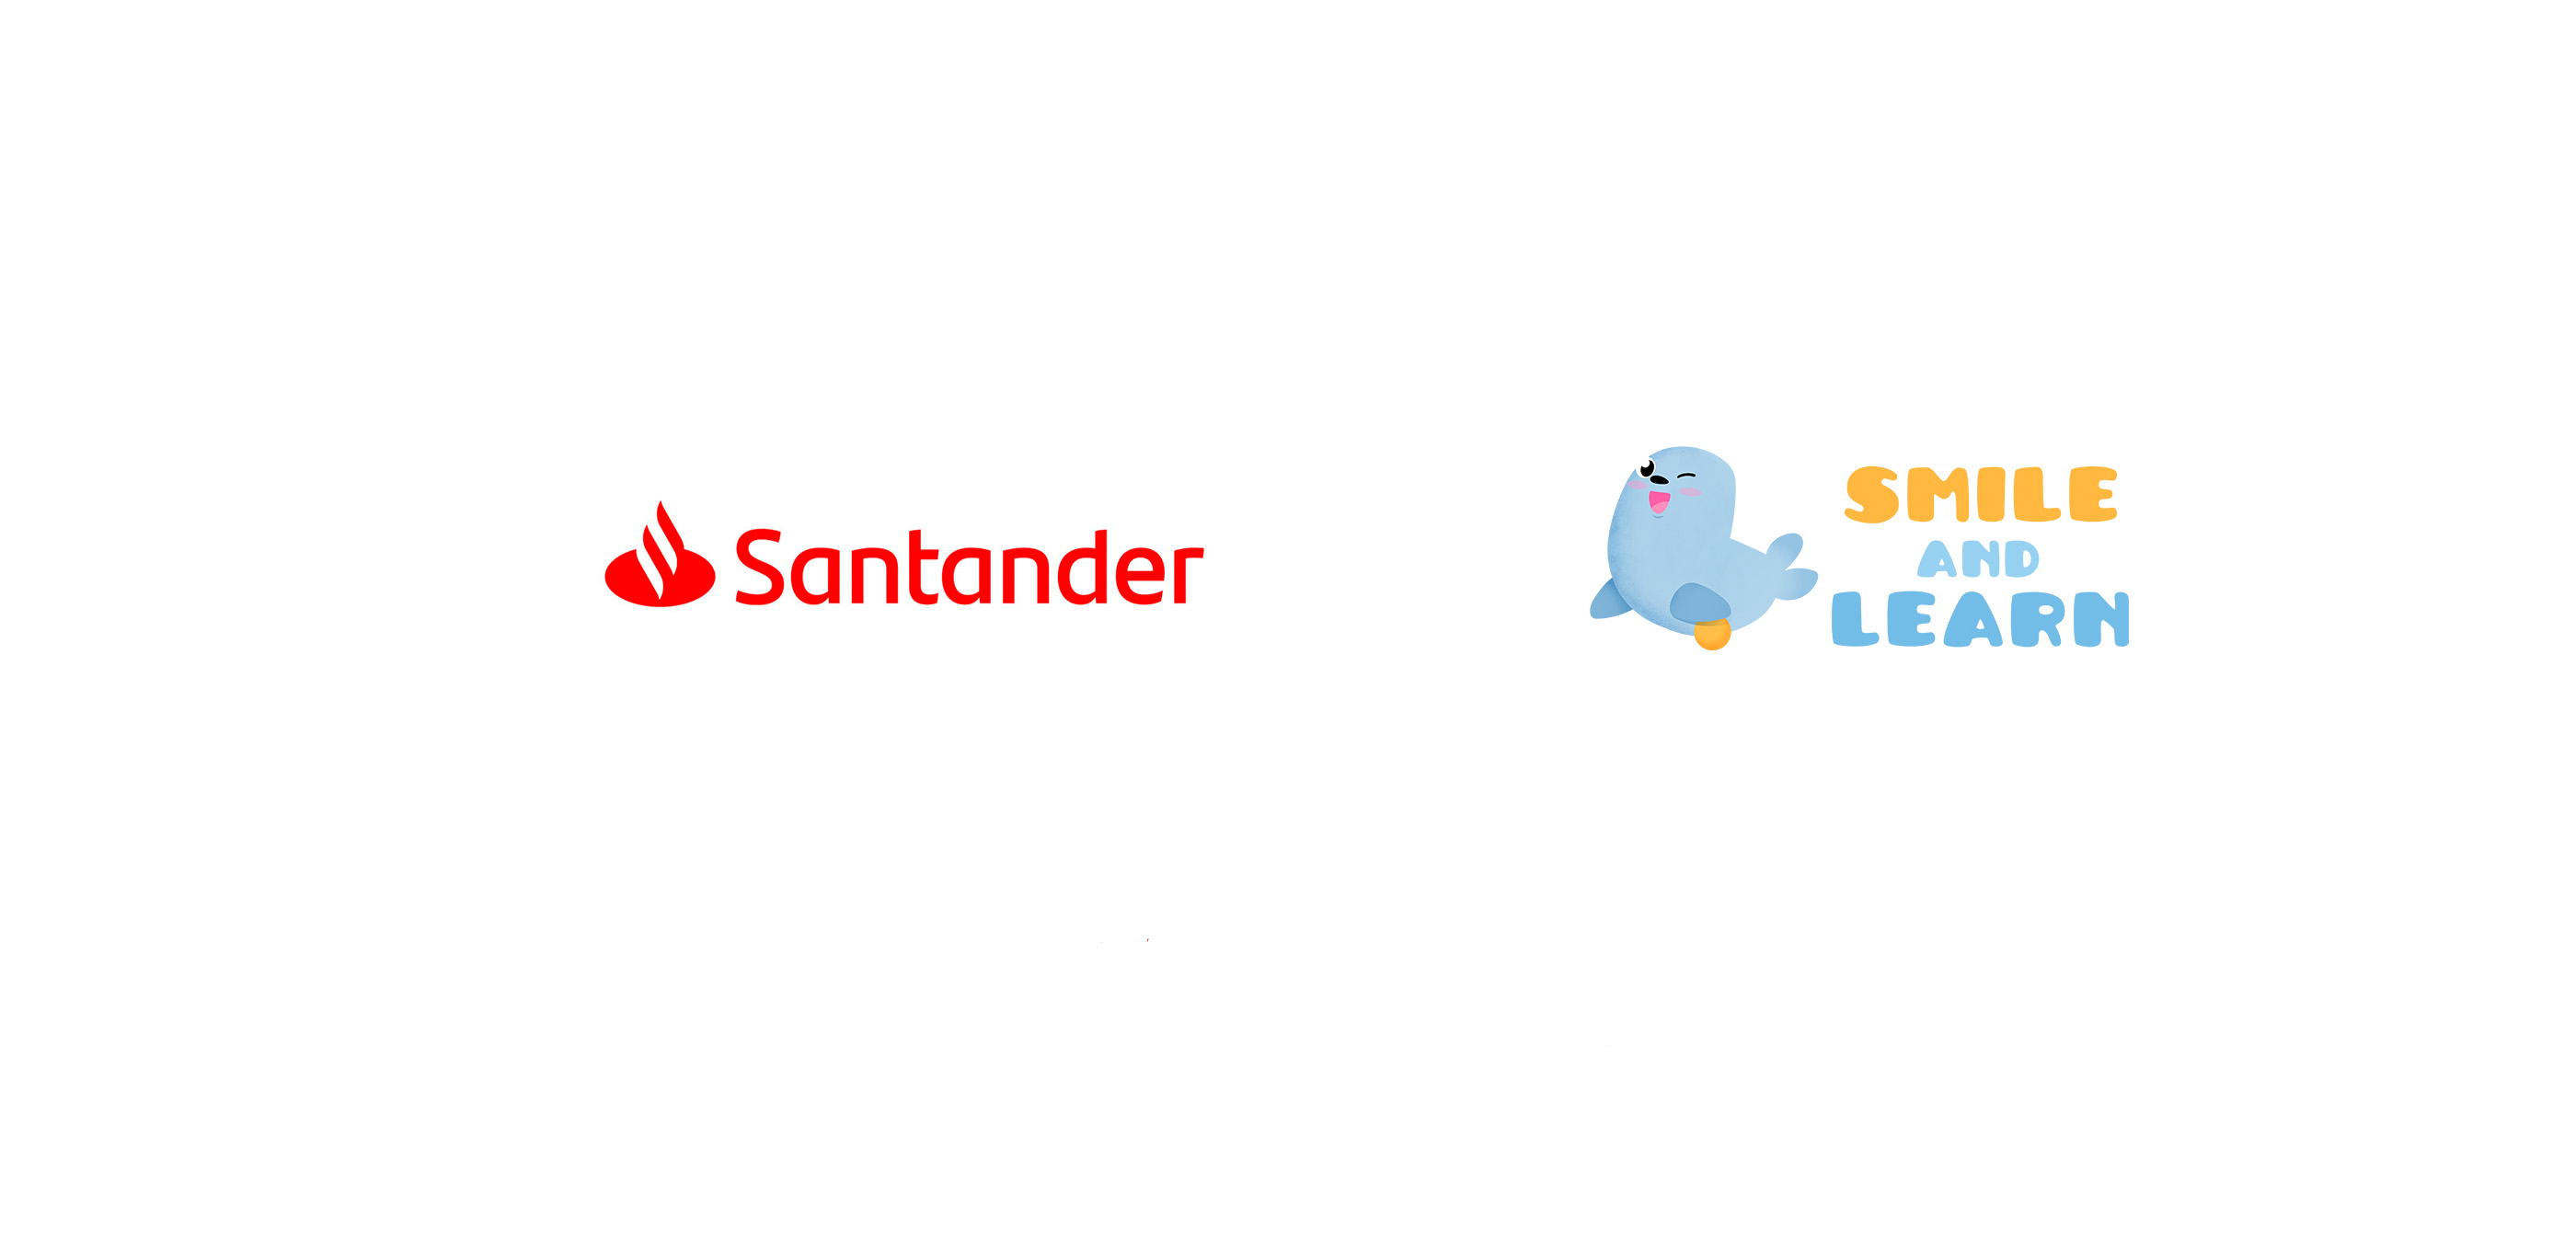 Santander Bank and Smile and Learn